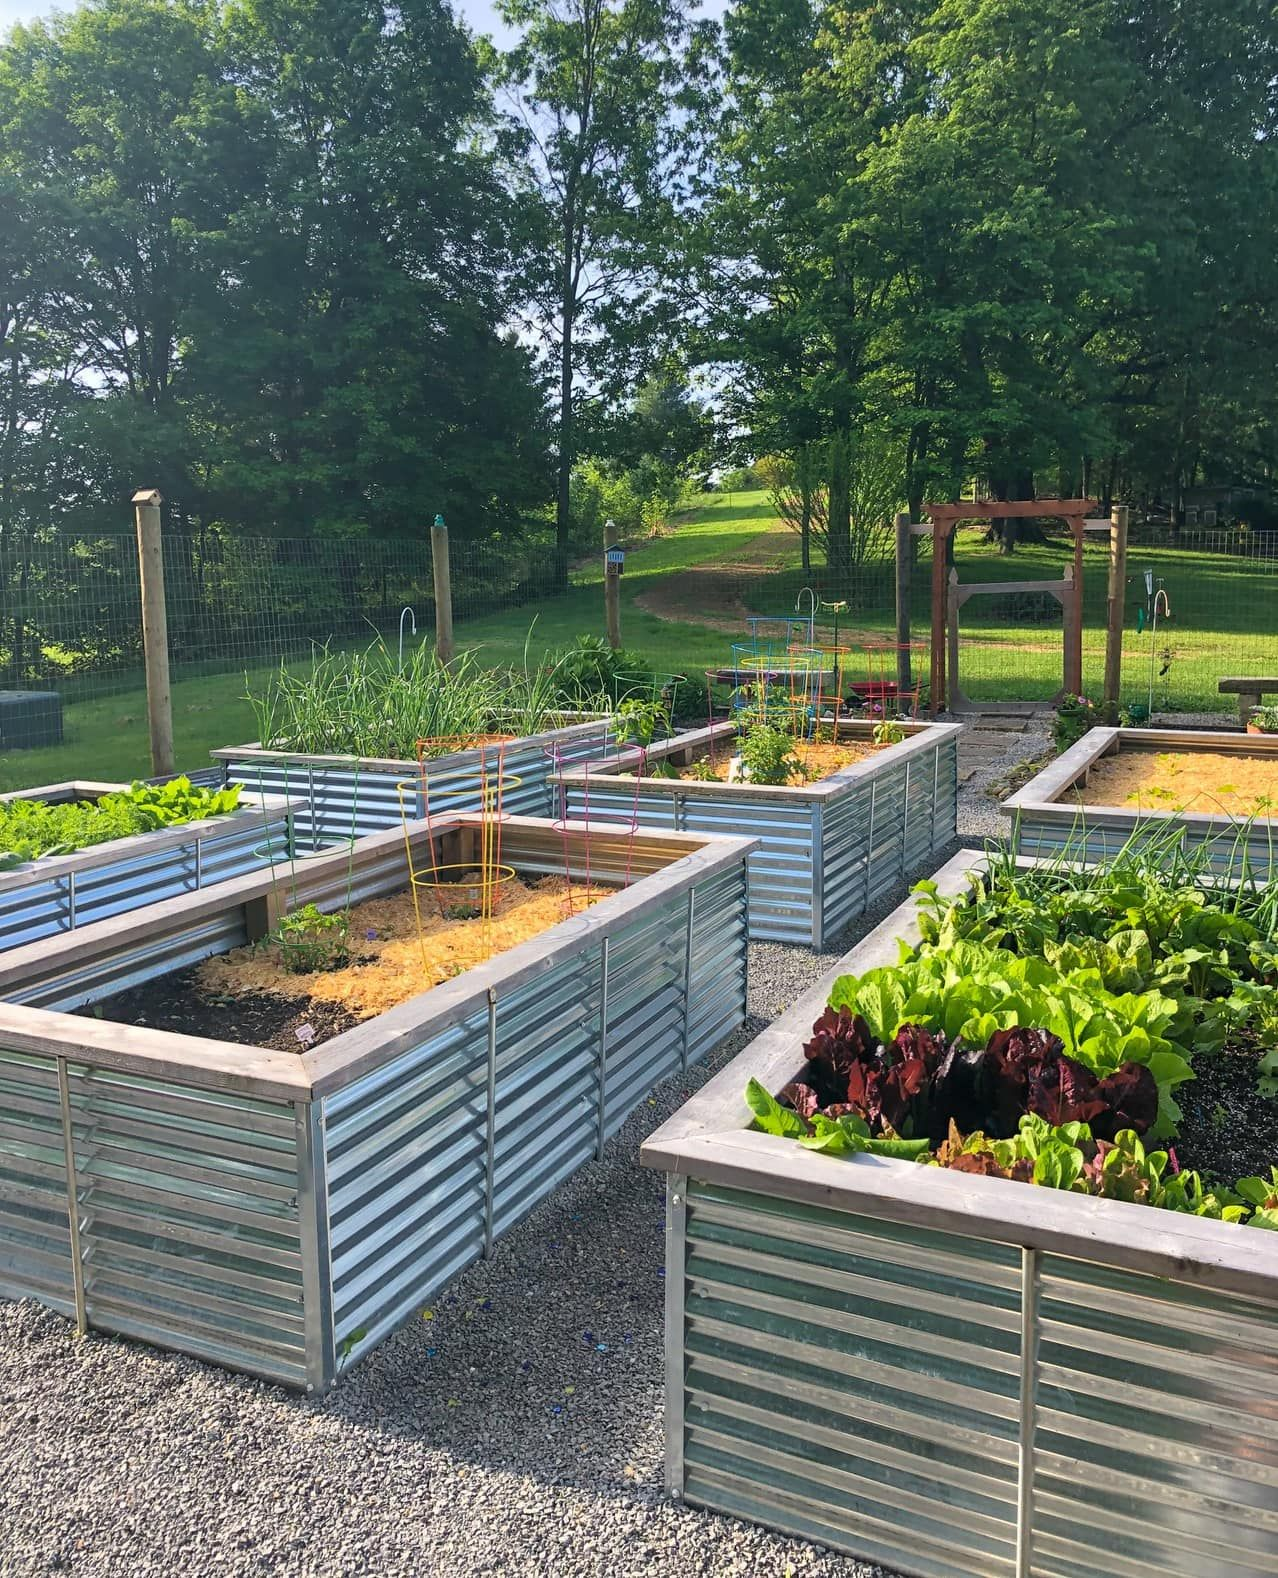 Galvanized Steel Raised Garden Bed Plans and Tutorial | Wholefully